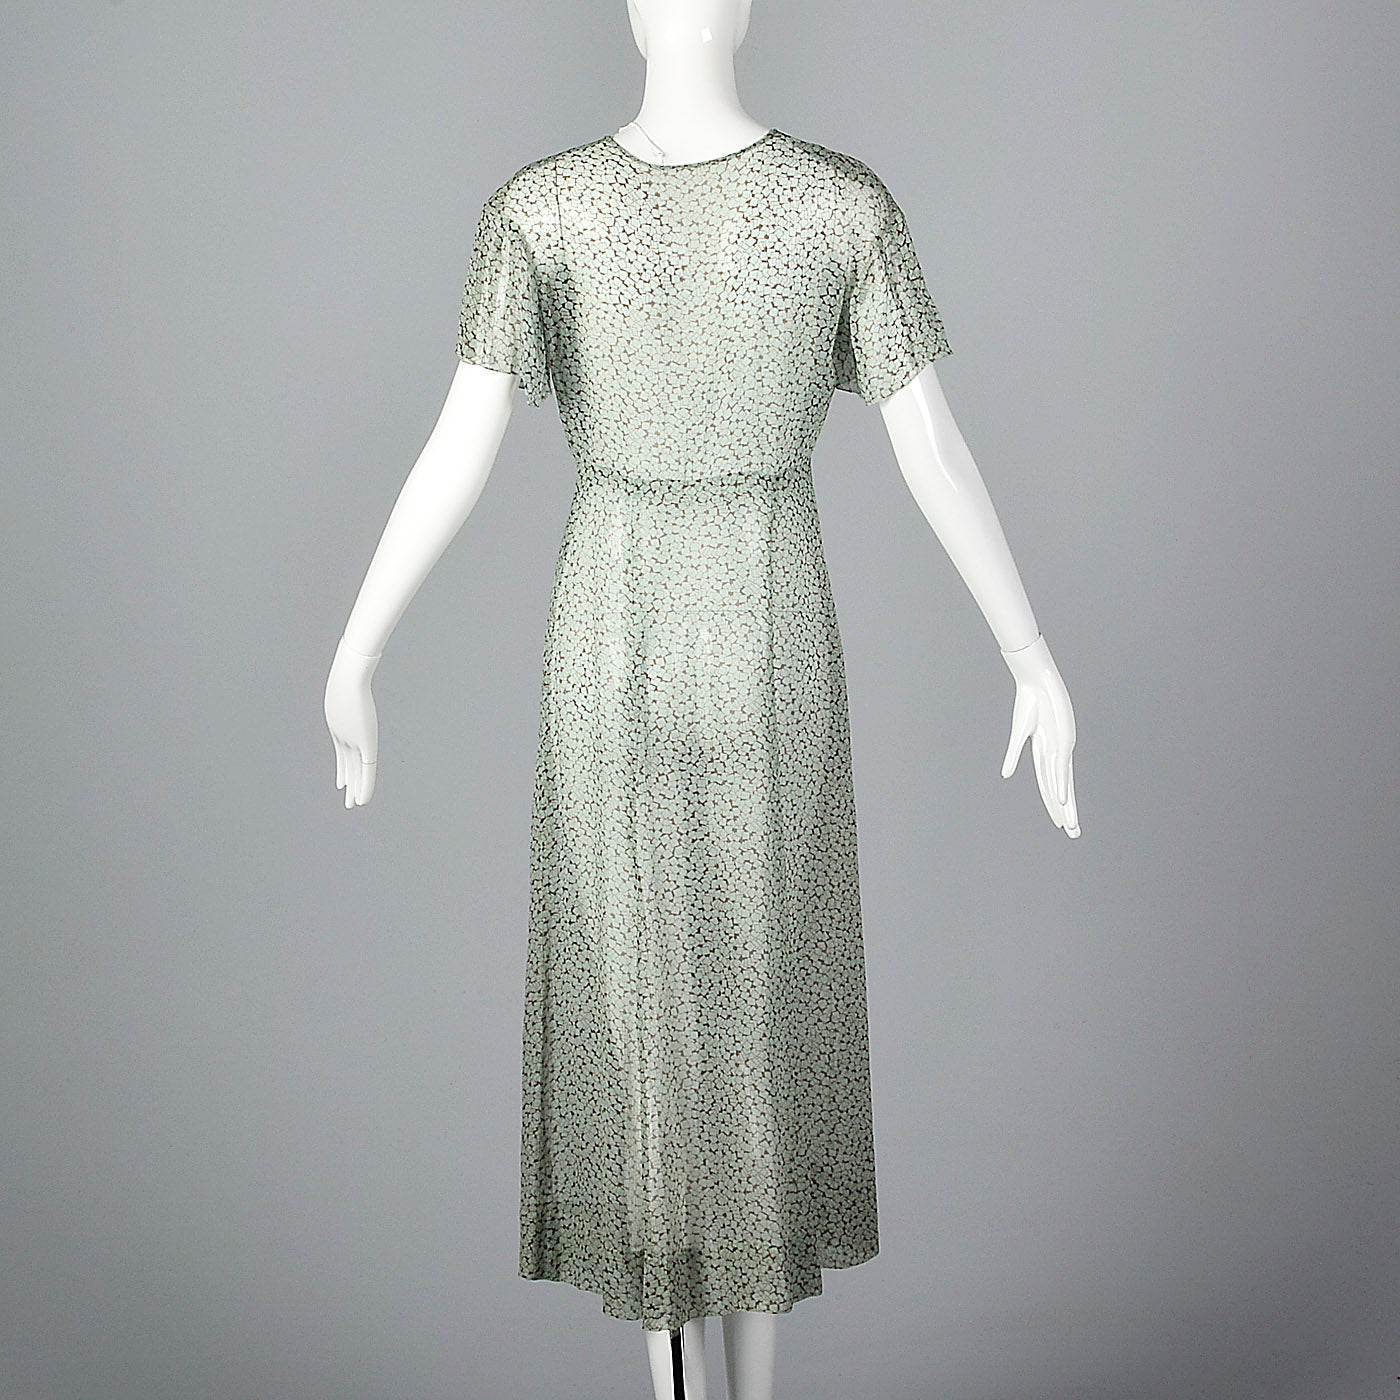 1930s Sheer Blue Silk Dress with Geometric Print